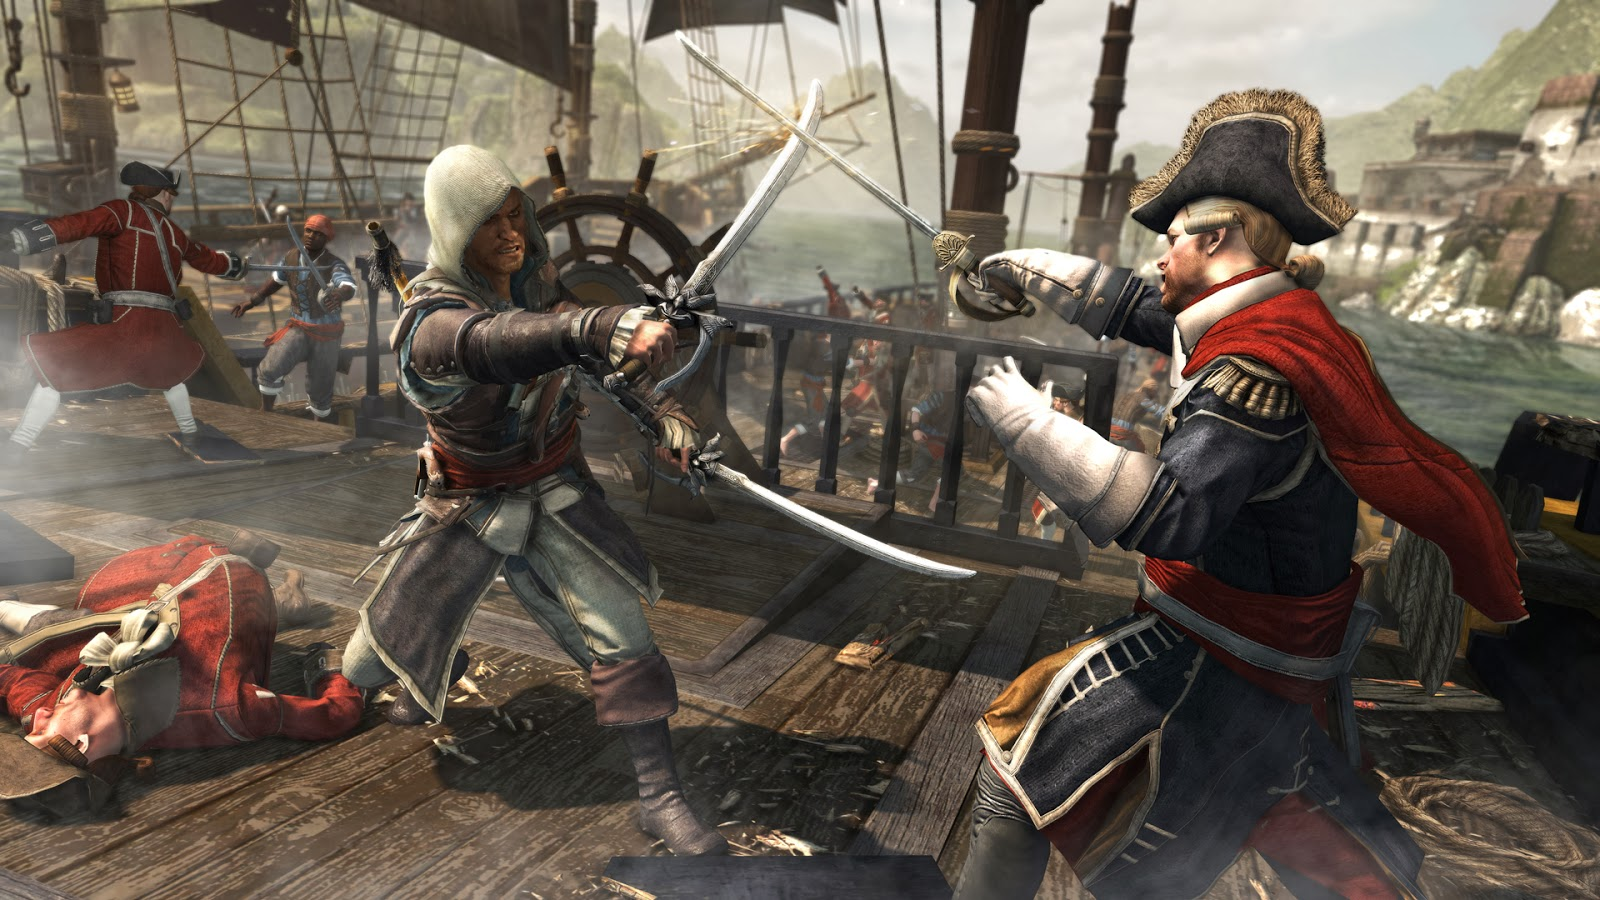 Black Ps4 Creed Sur Assassin's Pirates FlagLes Reviennent vmwyN0On8